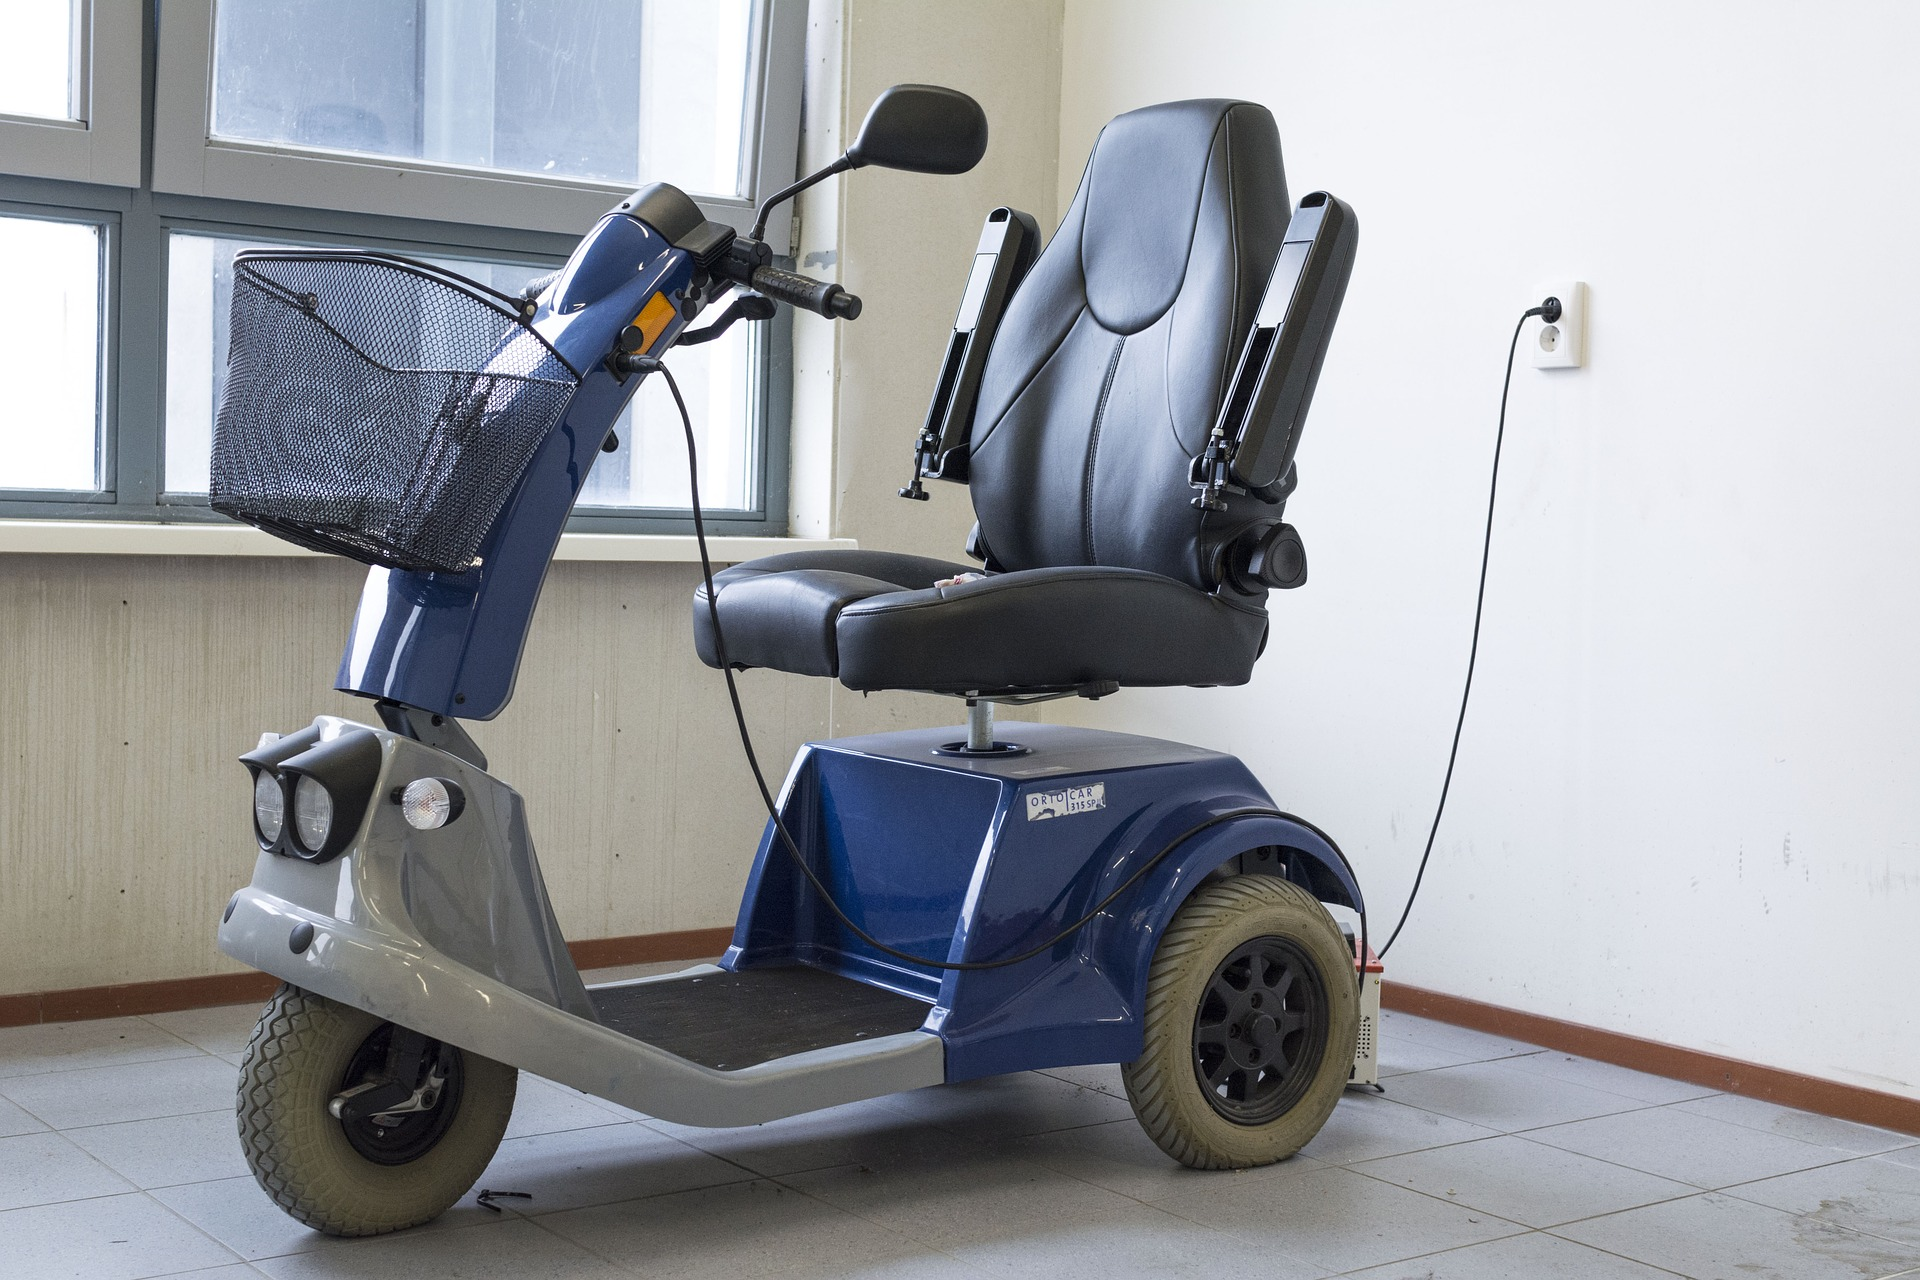 Trick2_mobility-scooter-1372965_1920.jpg